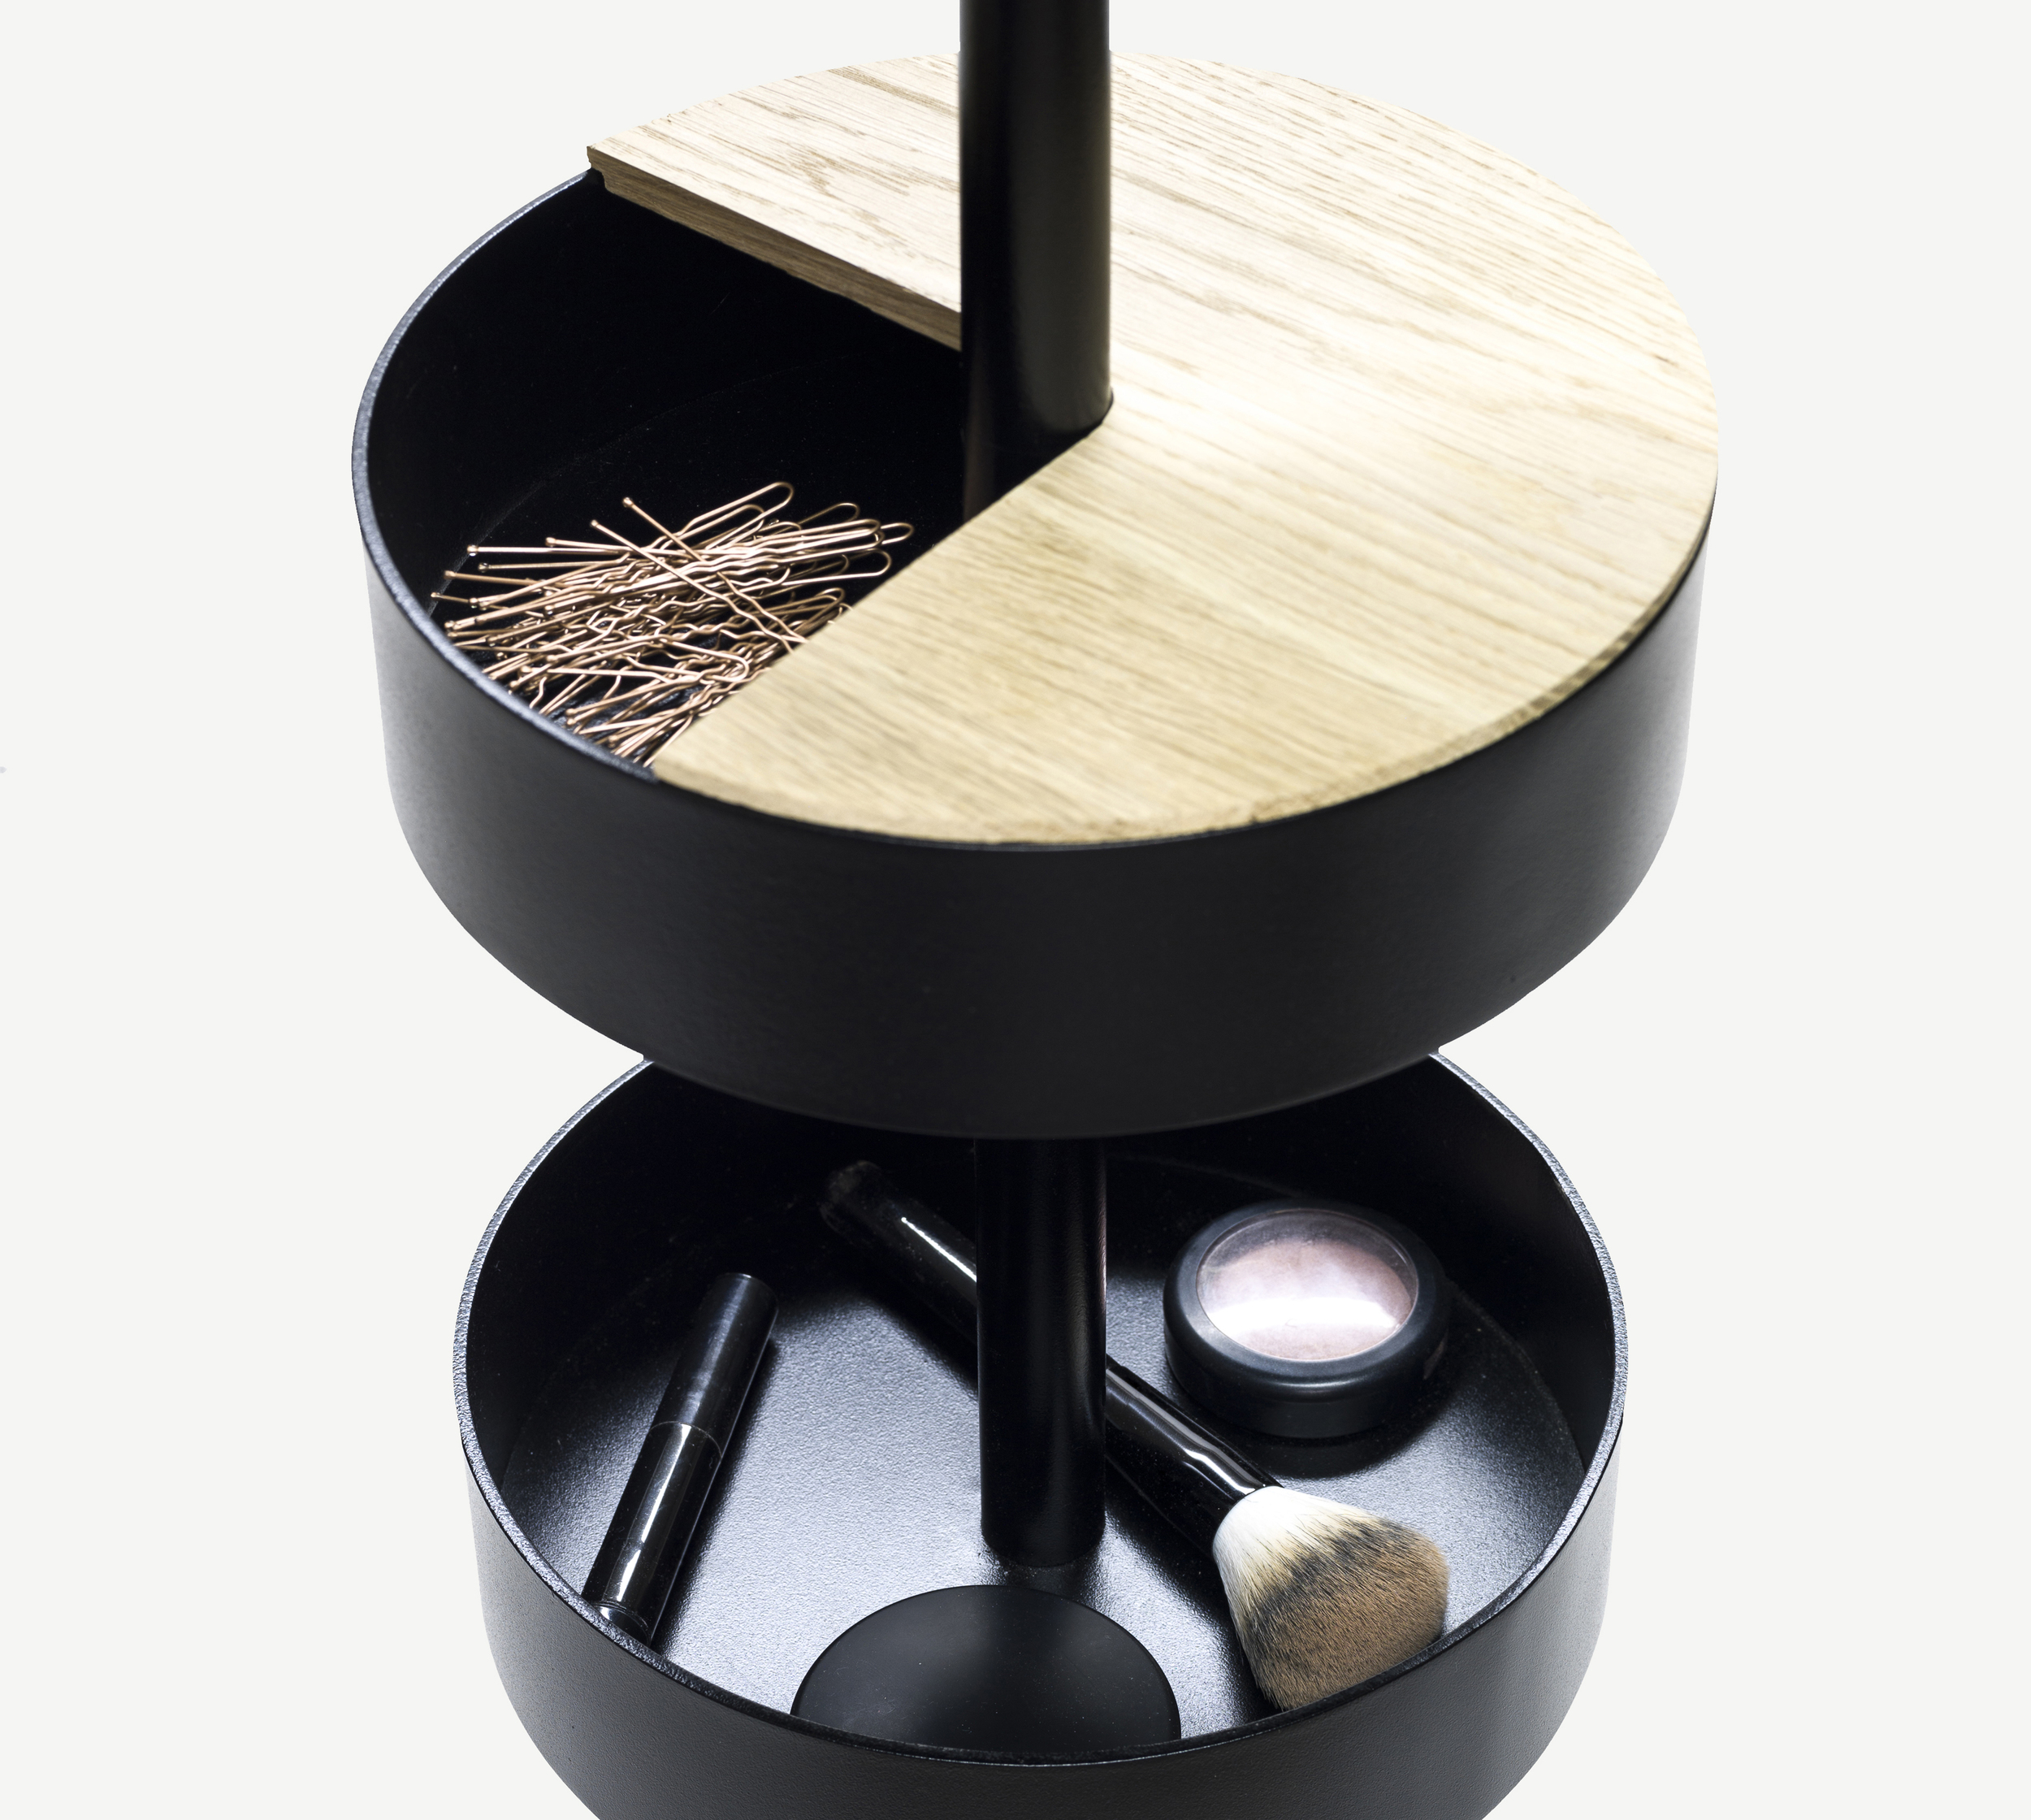 Thomas Schnur 'Stand up' circular containers with oak lids.